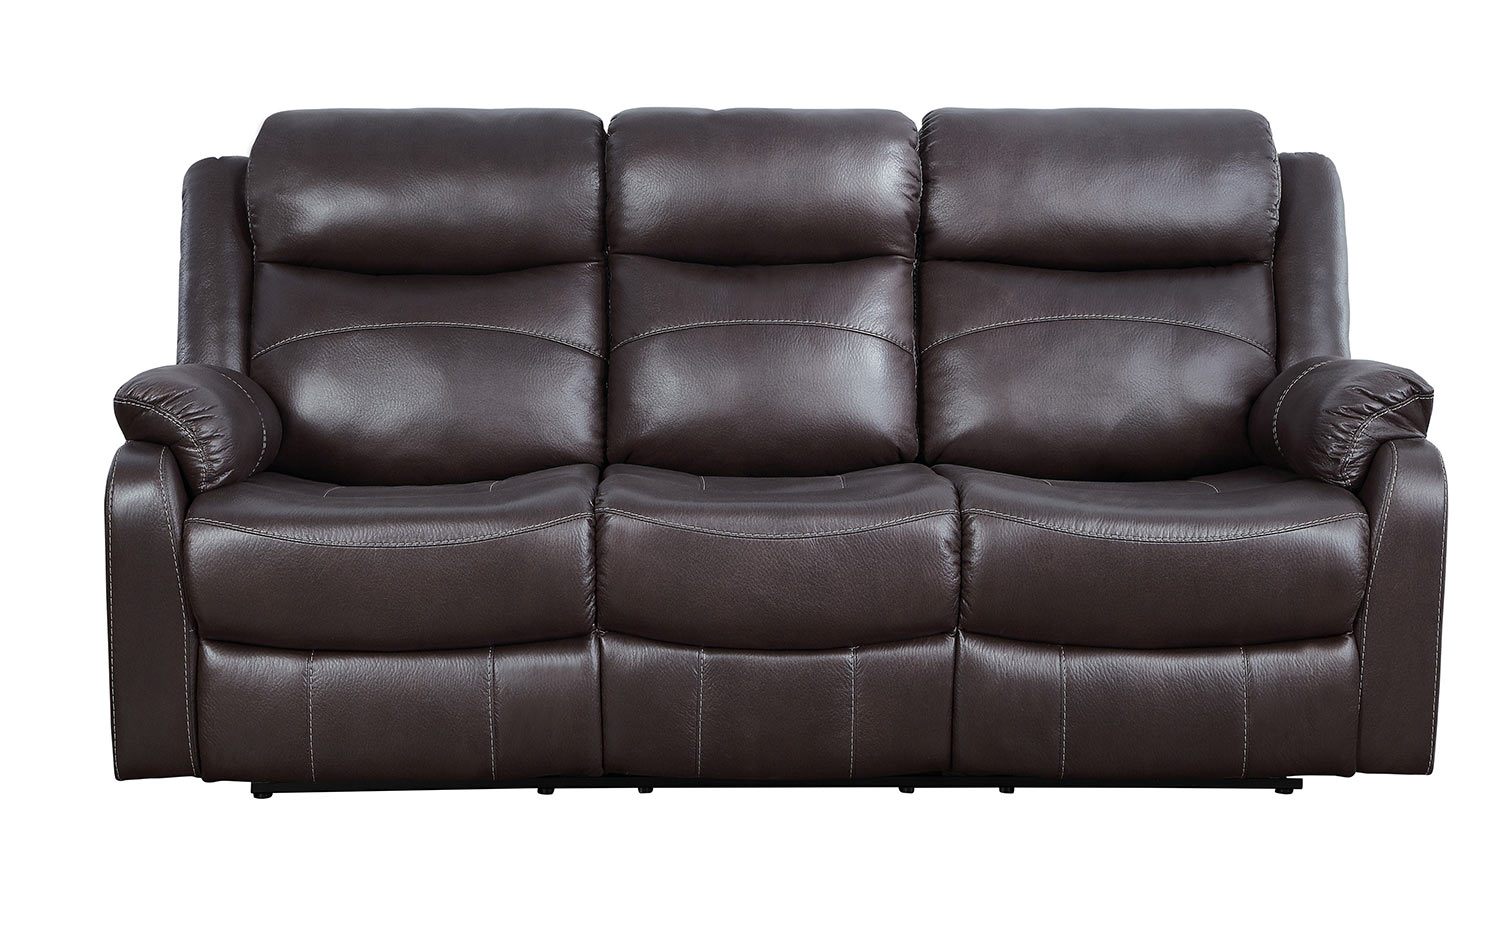 Homelegance Yerba Dark Brown Sofa Dallas TX | Living Room Sofa ...